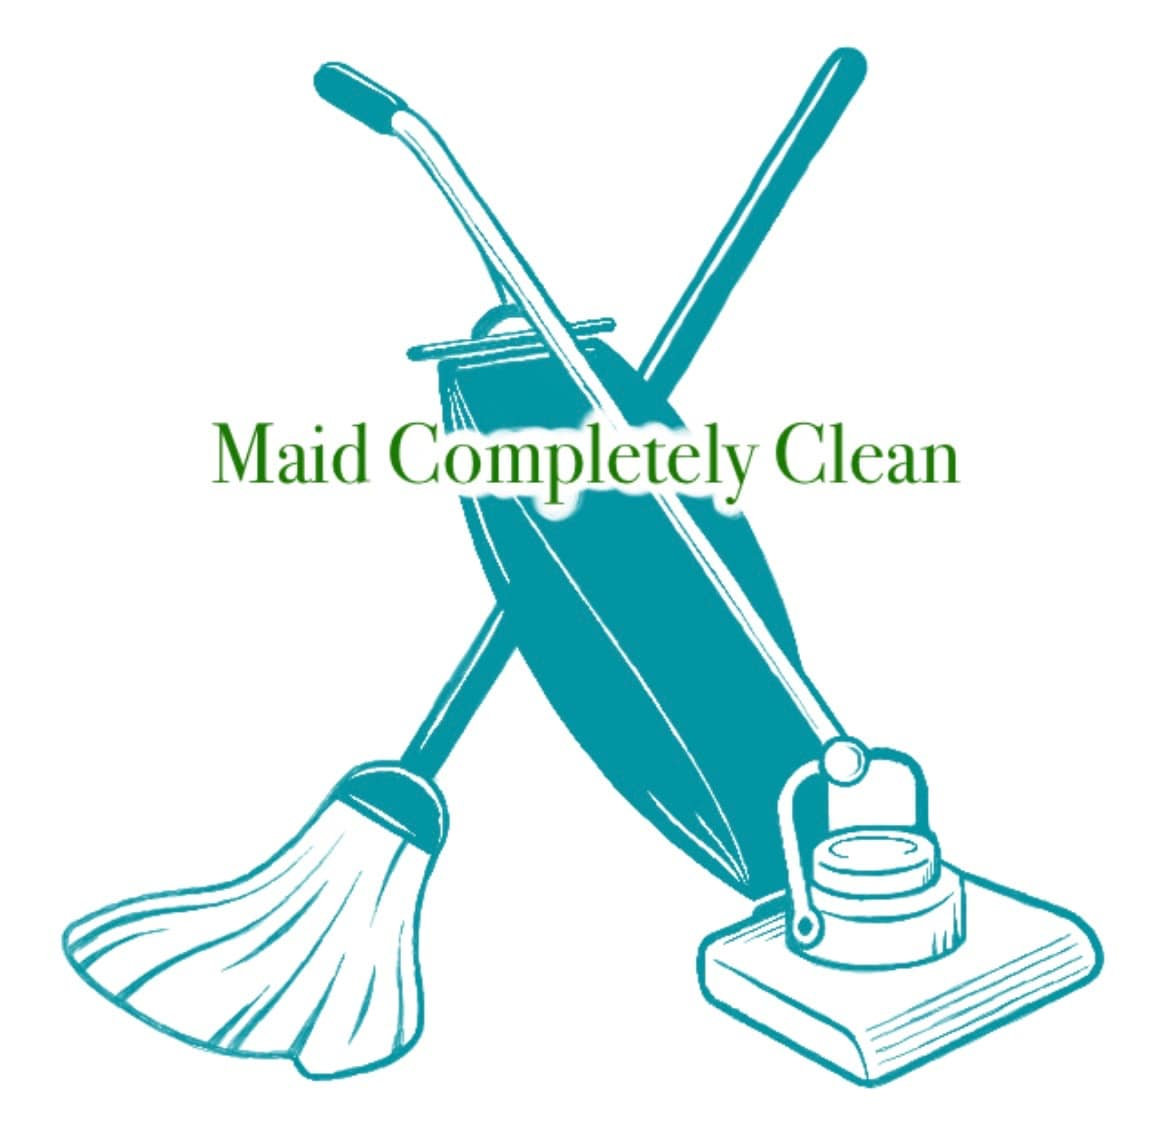 Maid Completely Clean